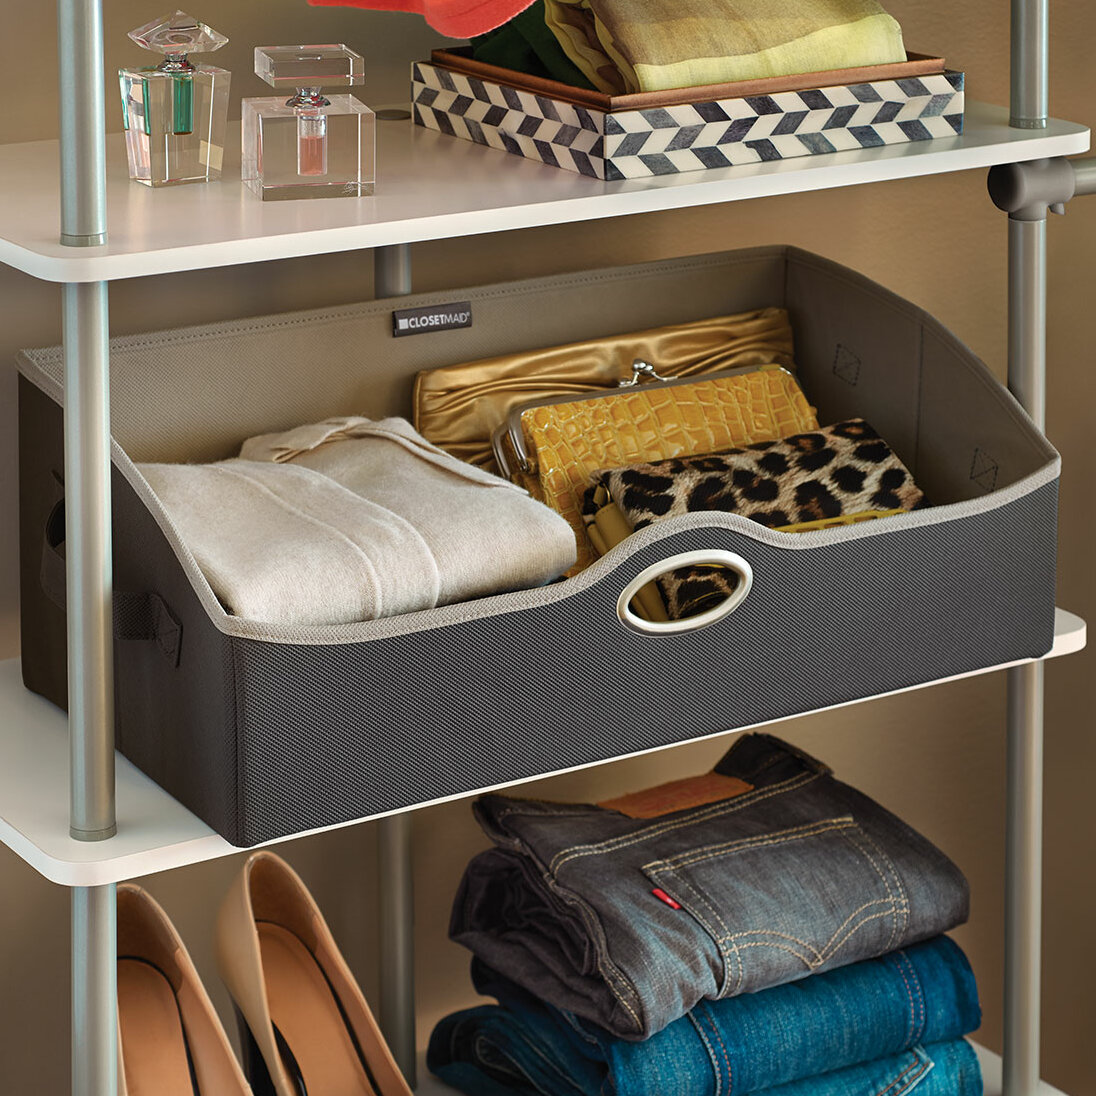 & ClosetMaid Large Fabric Storage Bin u0026 Reviews | Wayfair